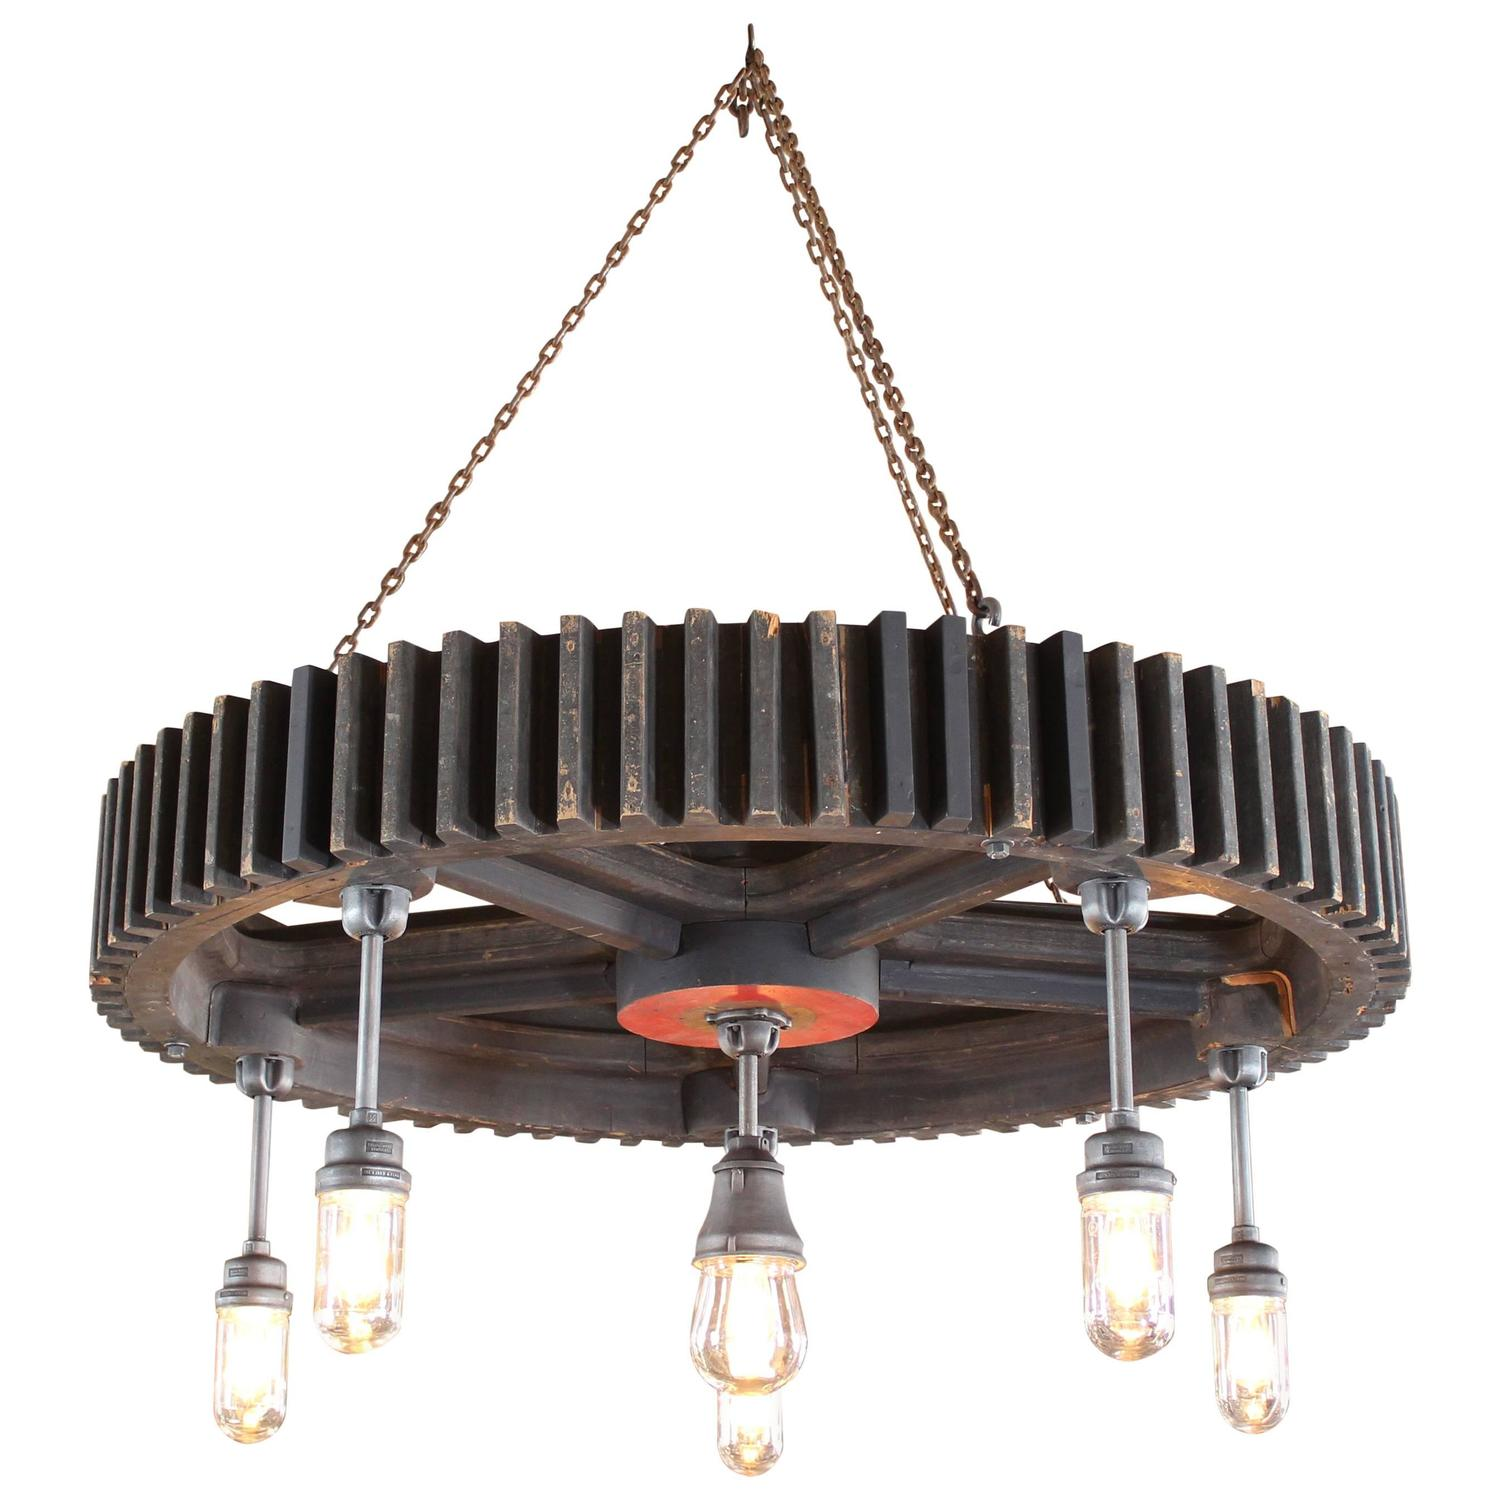 Antique and vintage lighting chandeliers and lamps 74373 for chandelier vintage industrial pattern wood amp glass light hanging pendant lamp arubaitofo Image collections